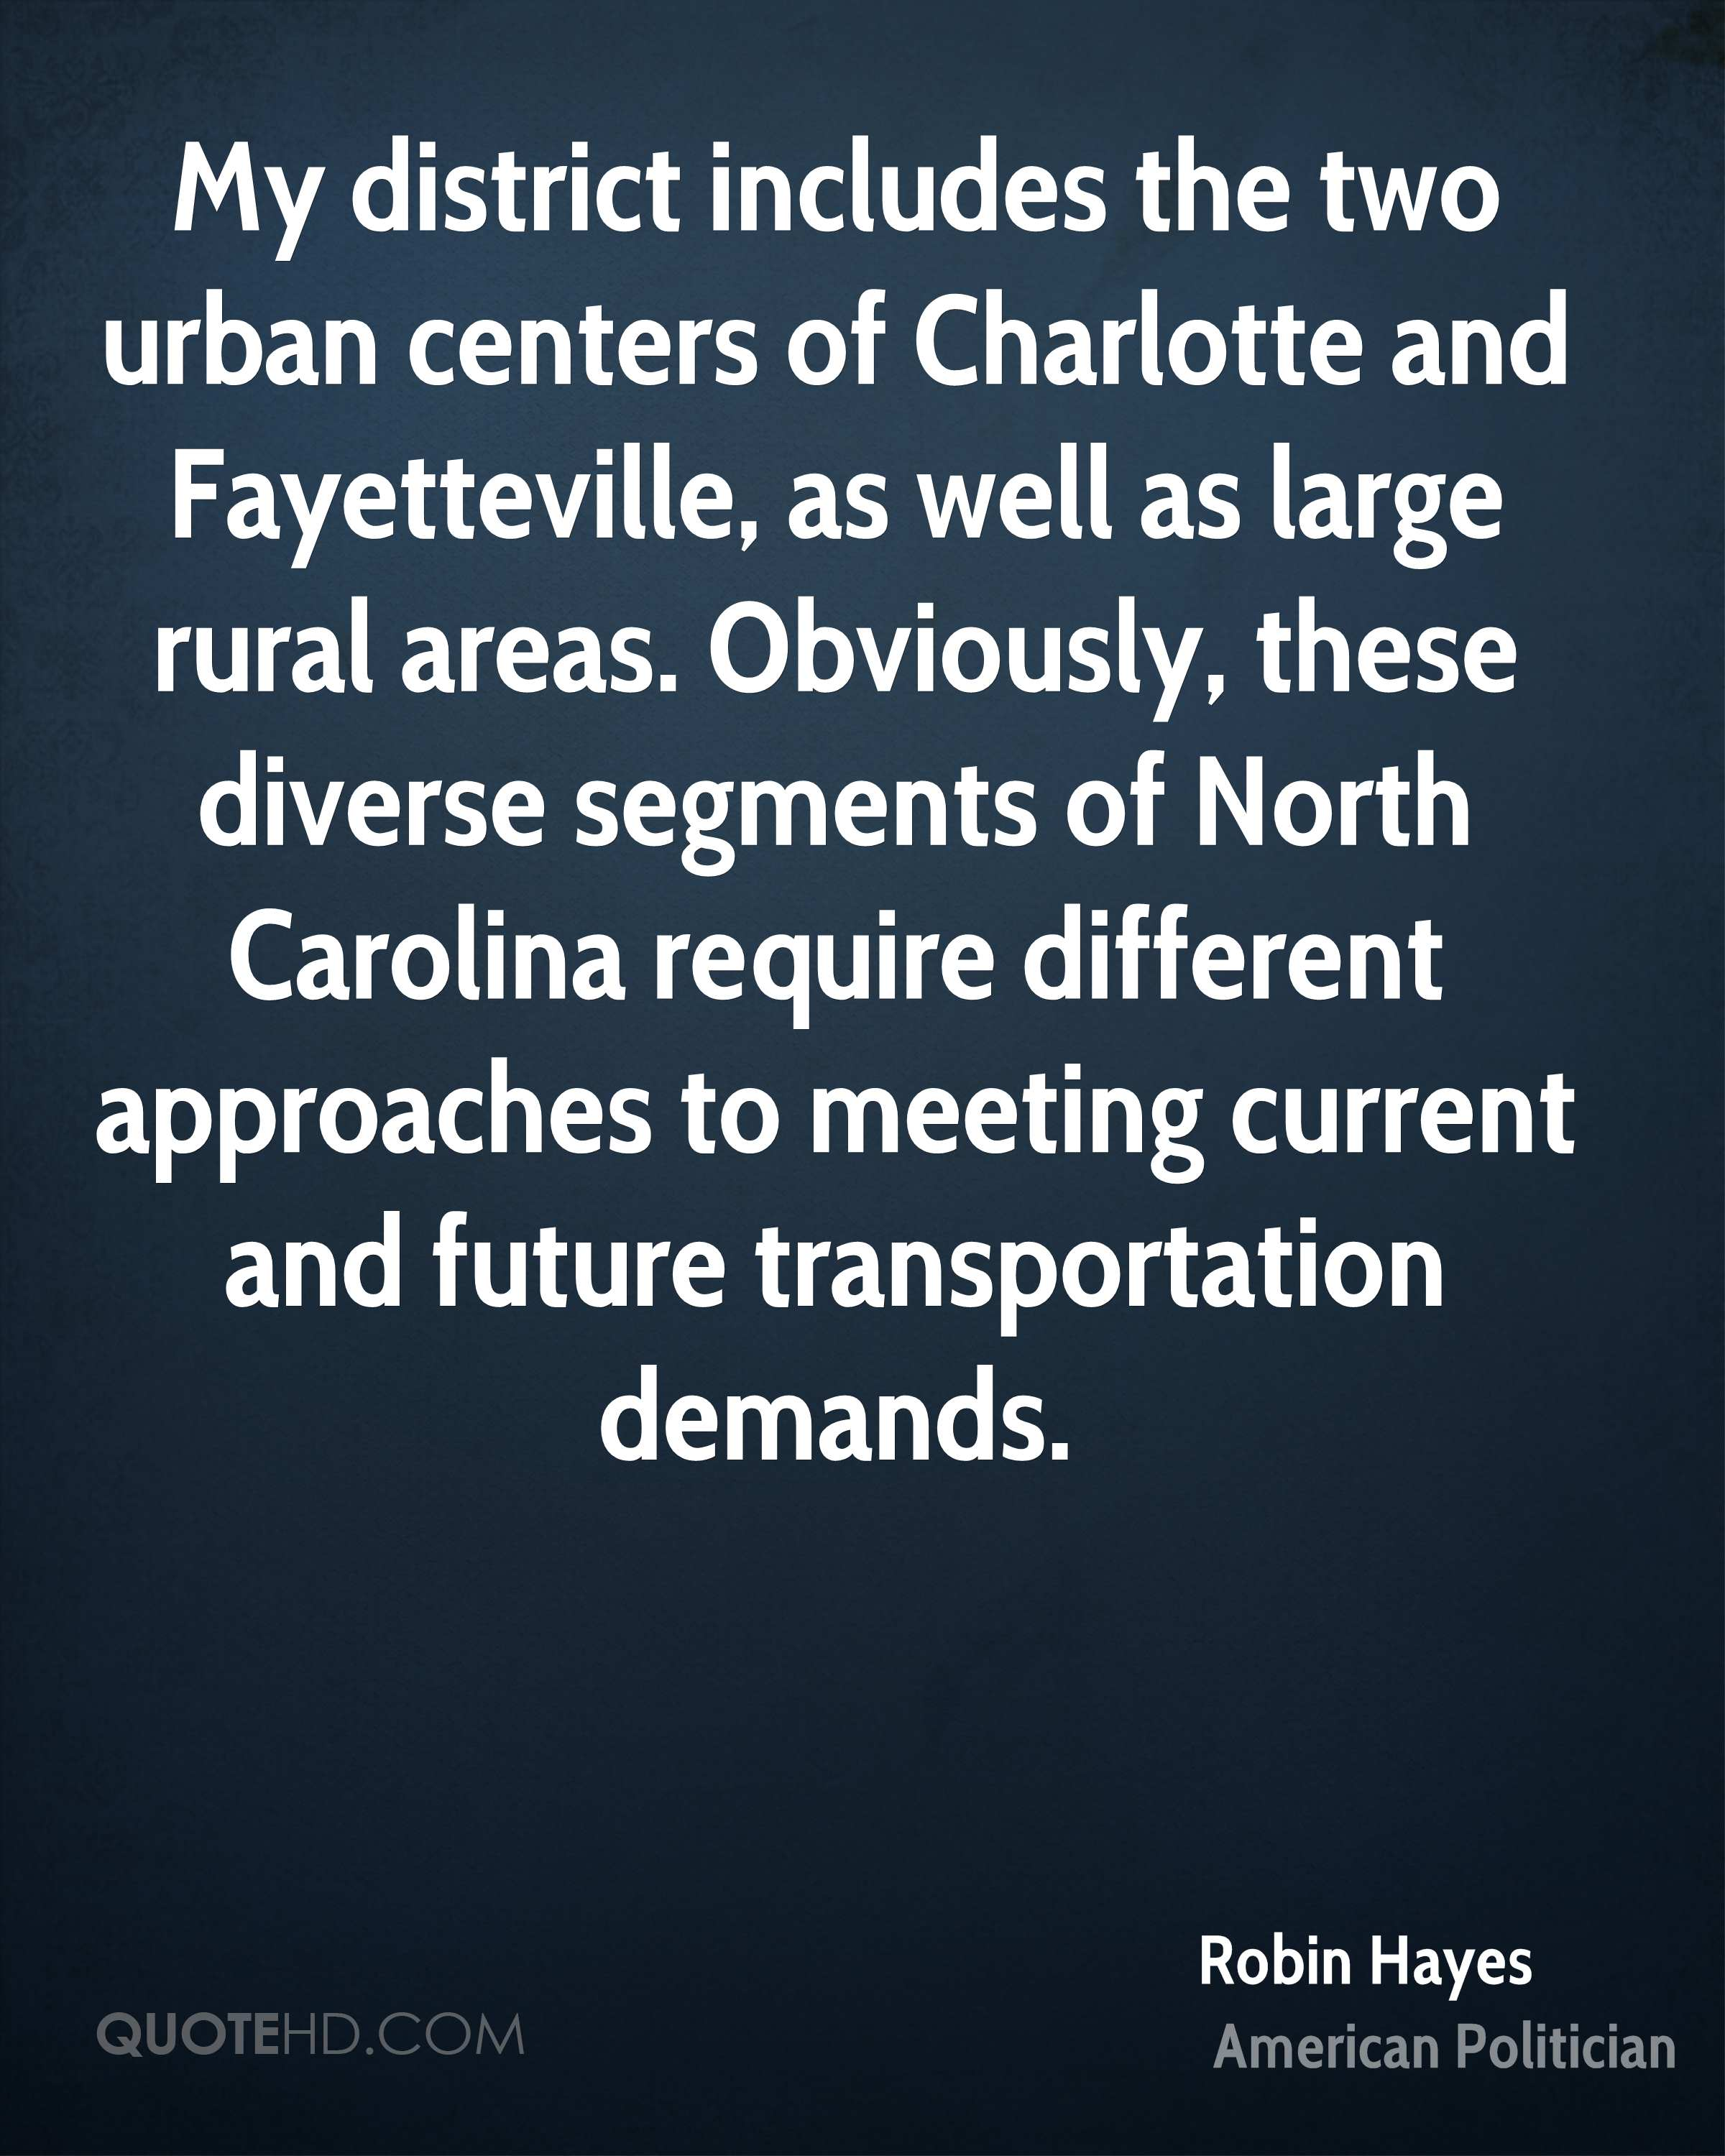 My district includes the two urban centers of Charlotte and Fayetteville, as well as large rural areas. Obviously, these diverse segments of North Carolina require different approaches to meeting current and future transportation demands.